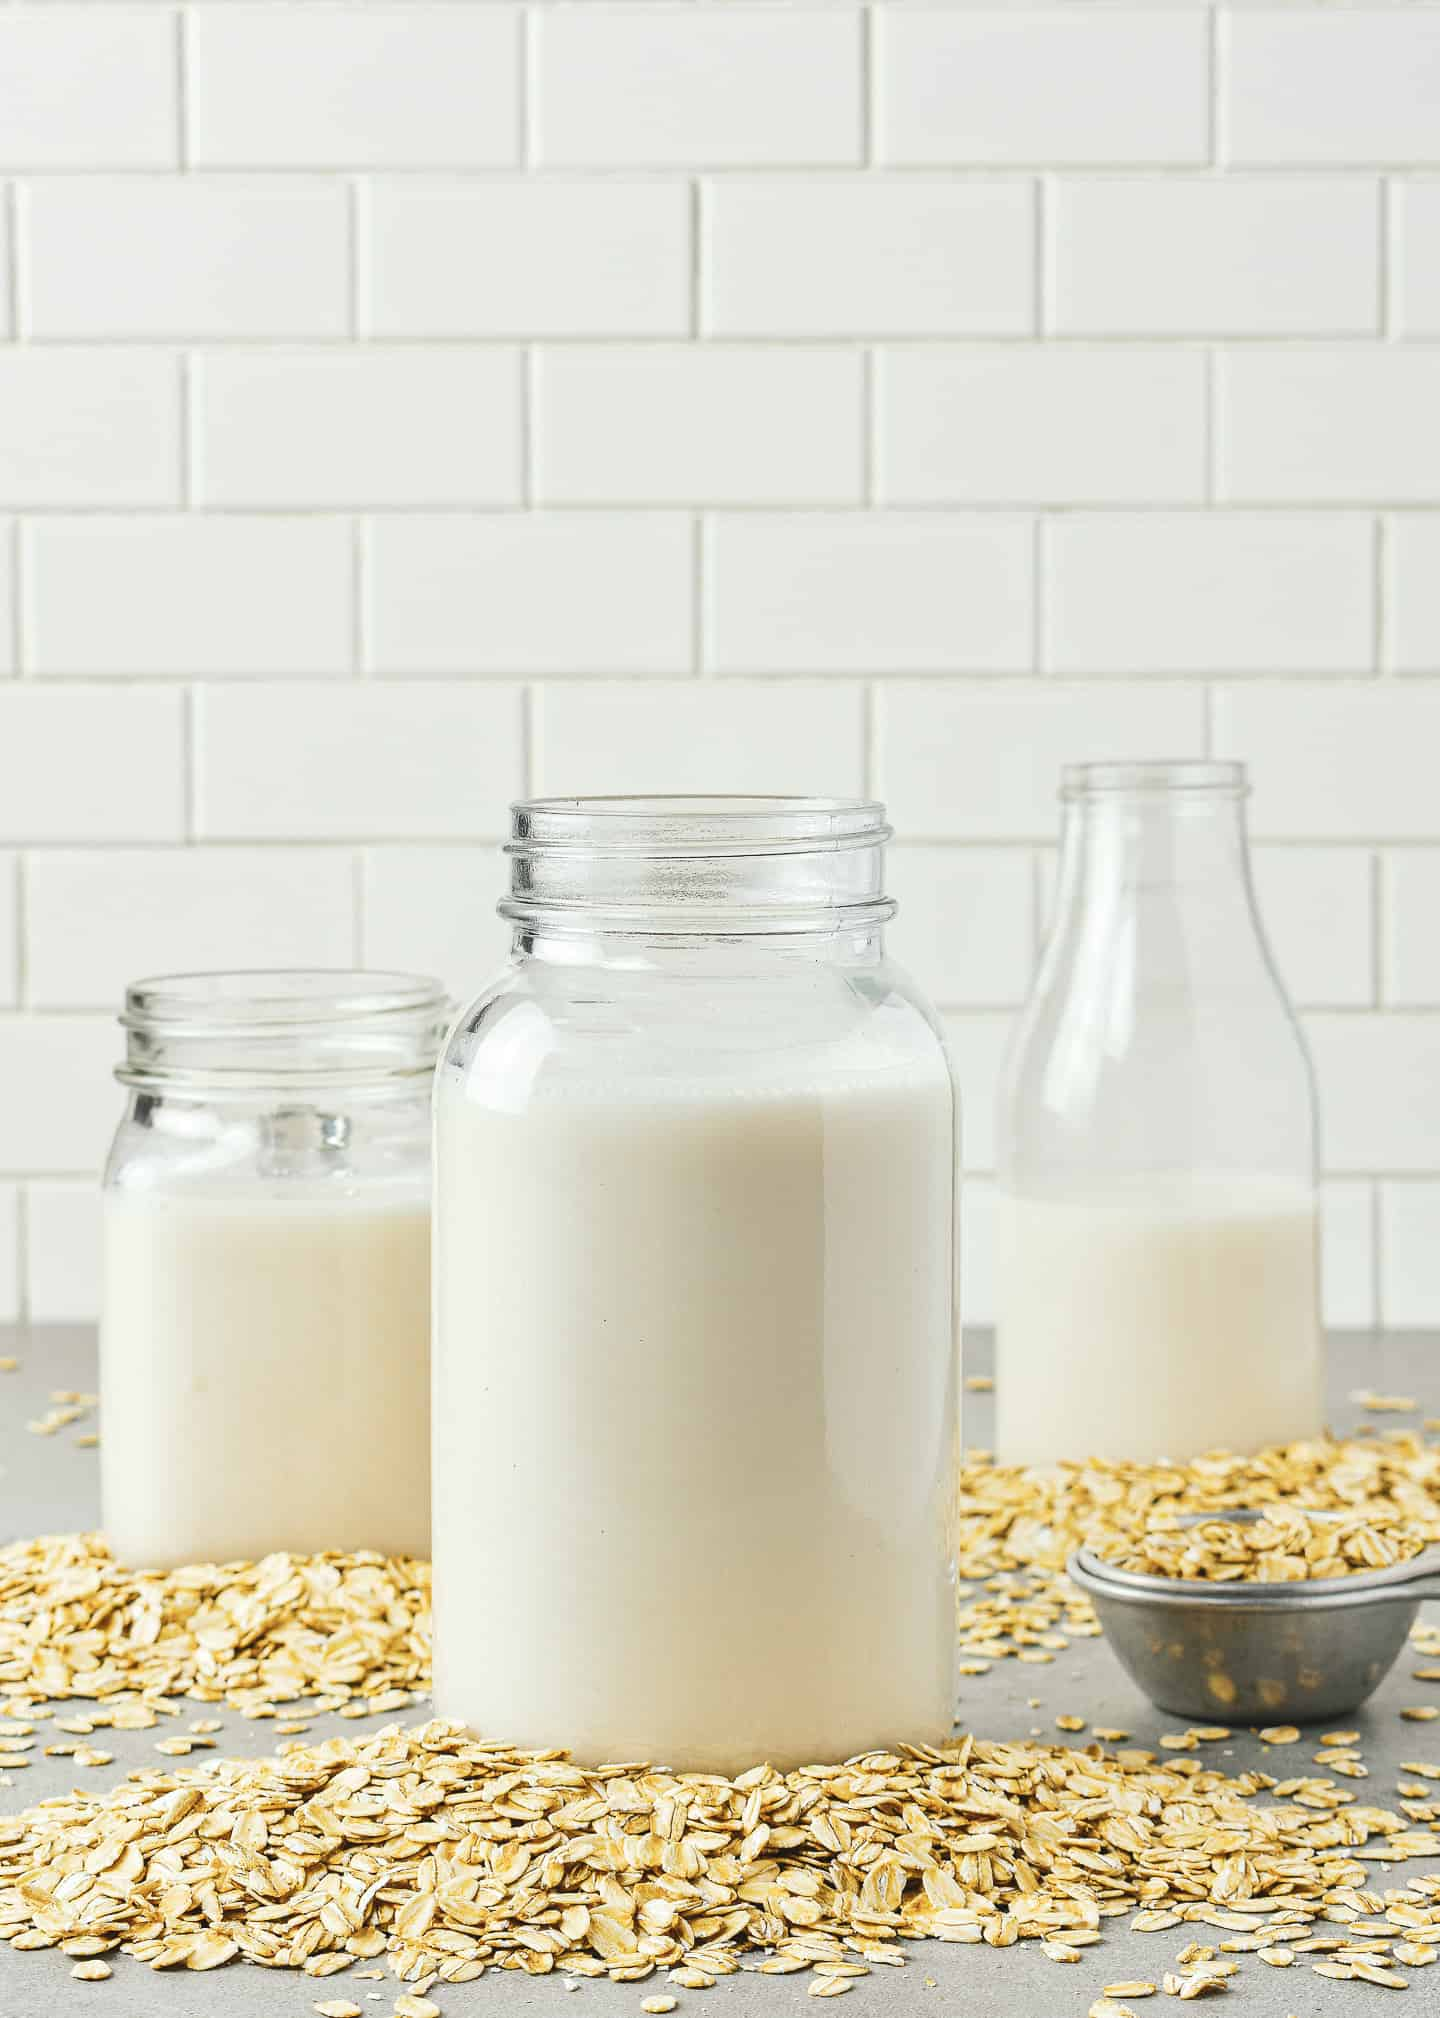 3 jars of oat milk with oats scattered on table.